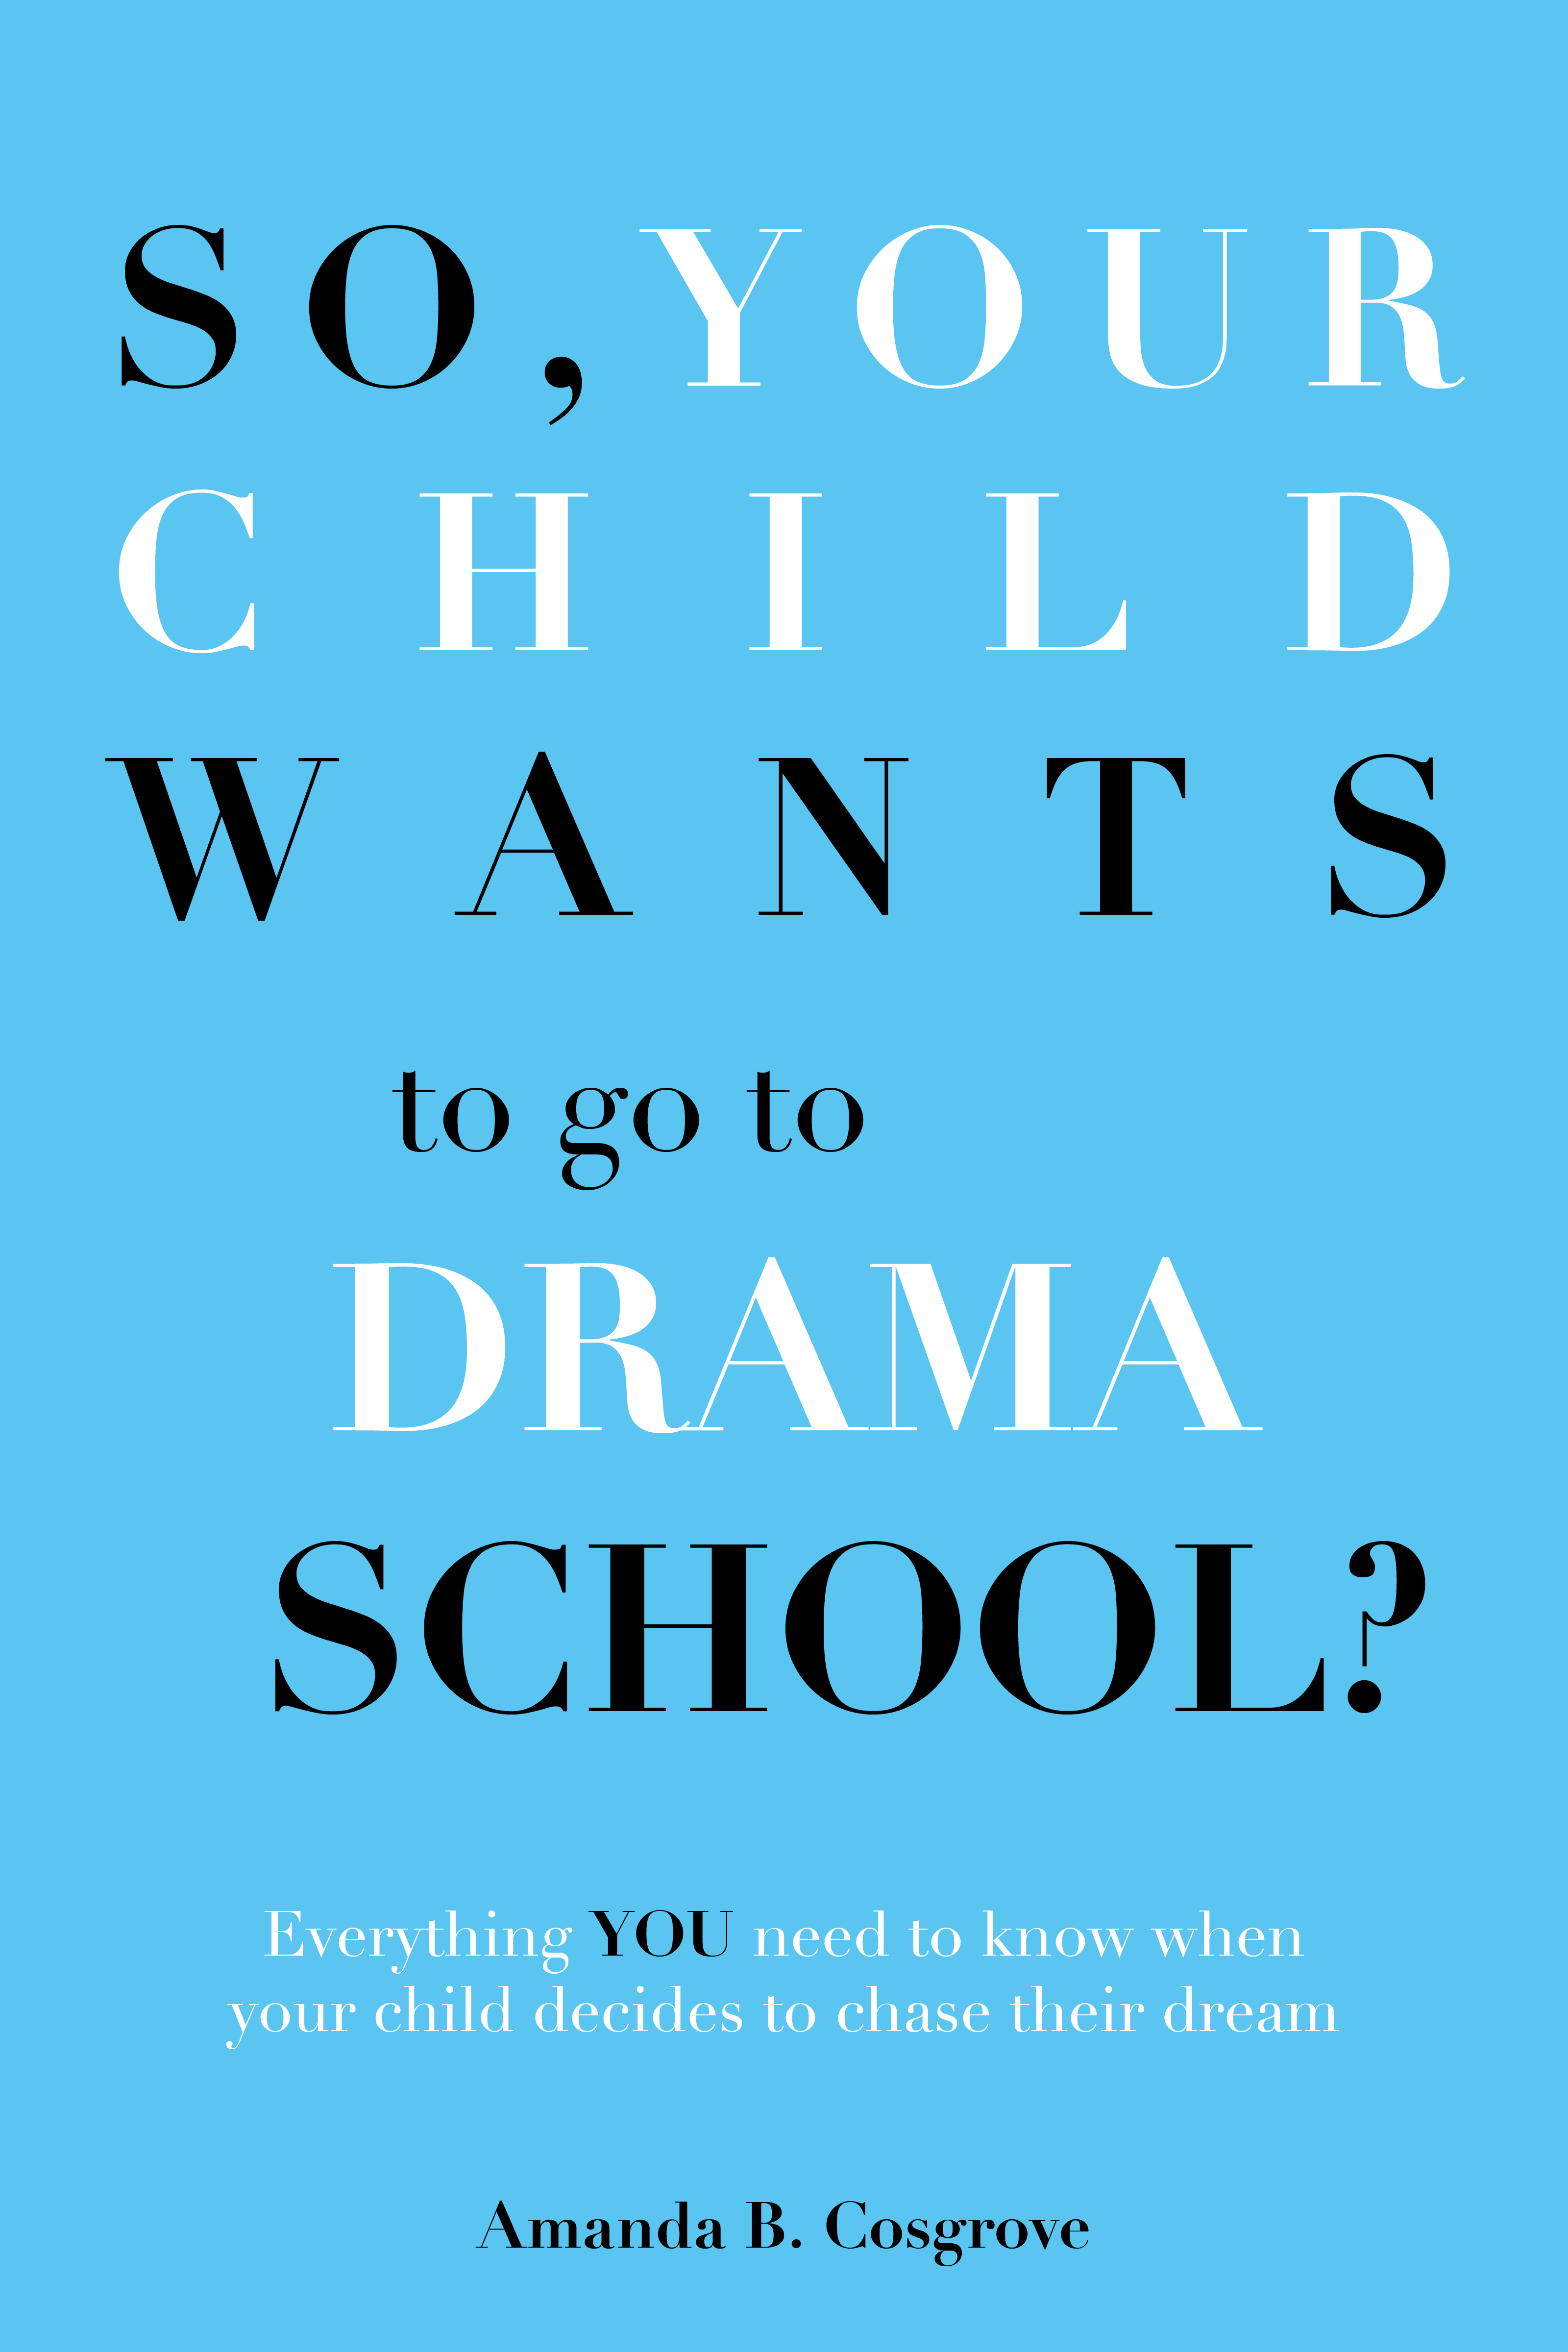 Book cover of So your child wants to go to drama school by Amanda b cosgrove